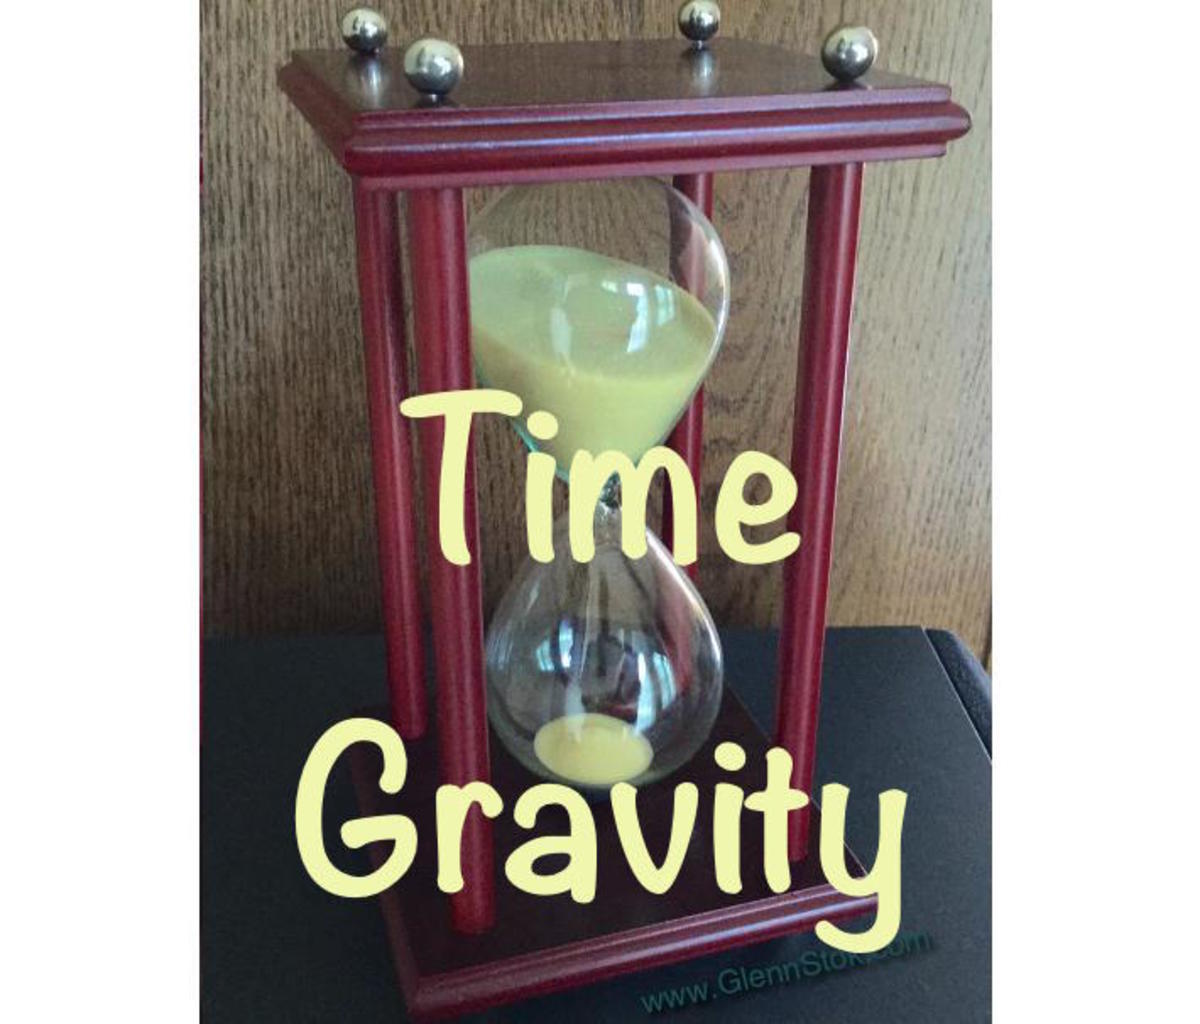 Time Gravity: A Theory About Why Time Only Goes Forward